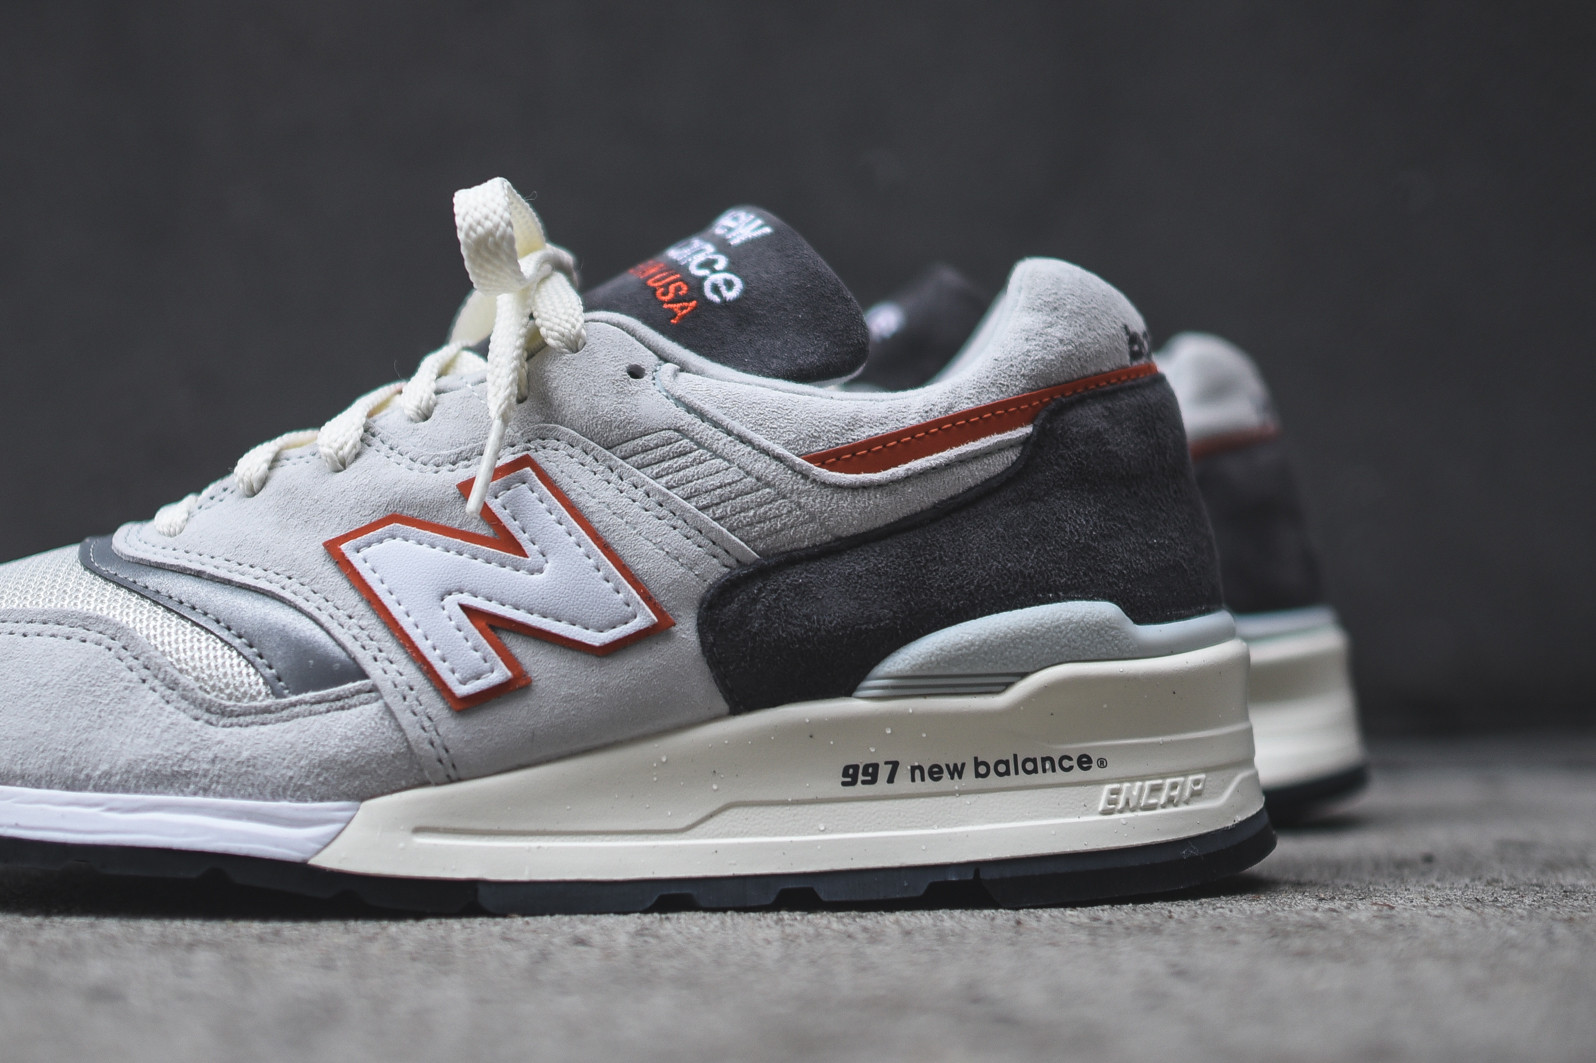 new balance 997 homme gris